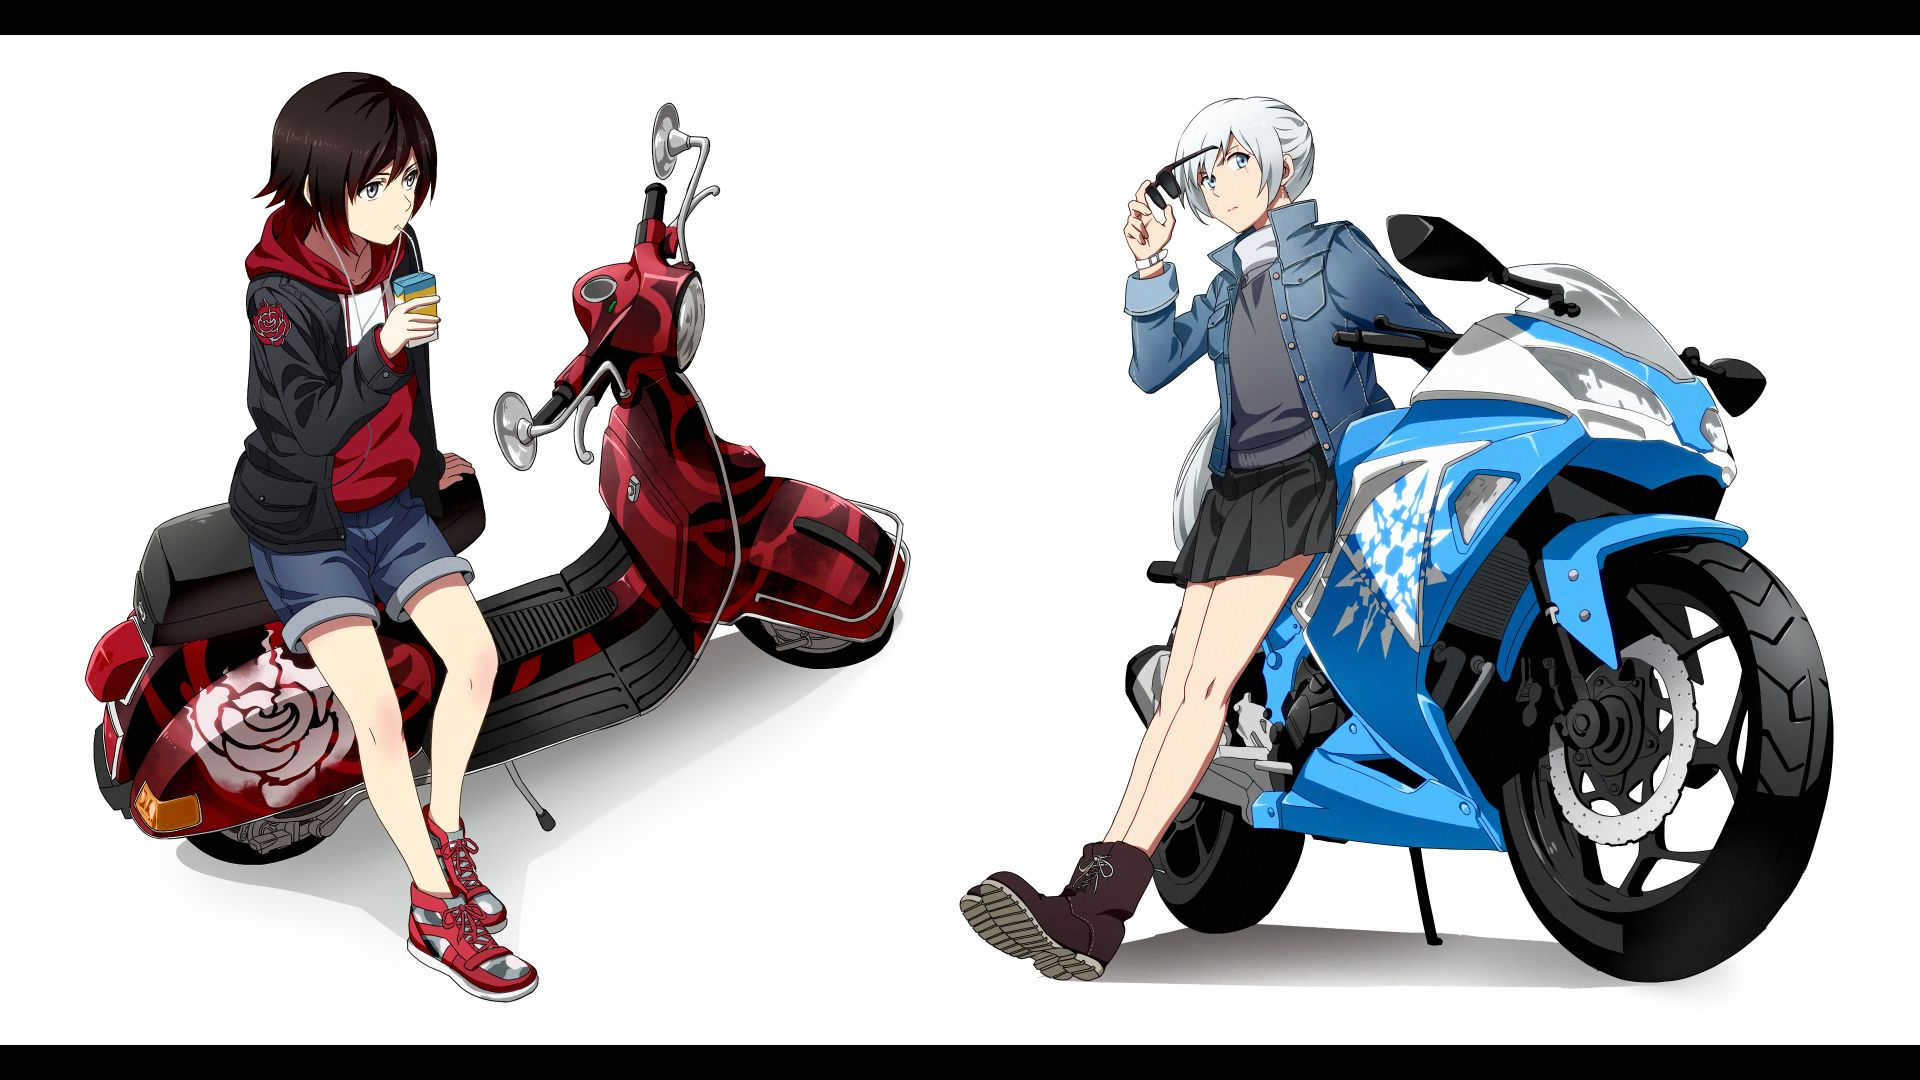 Anime Rwby Motorcycle Weiss Schnee Ruby Rose Rwby Wallpaper Rwby Wallpaper Rwby Rwby Anime